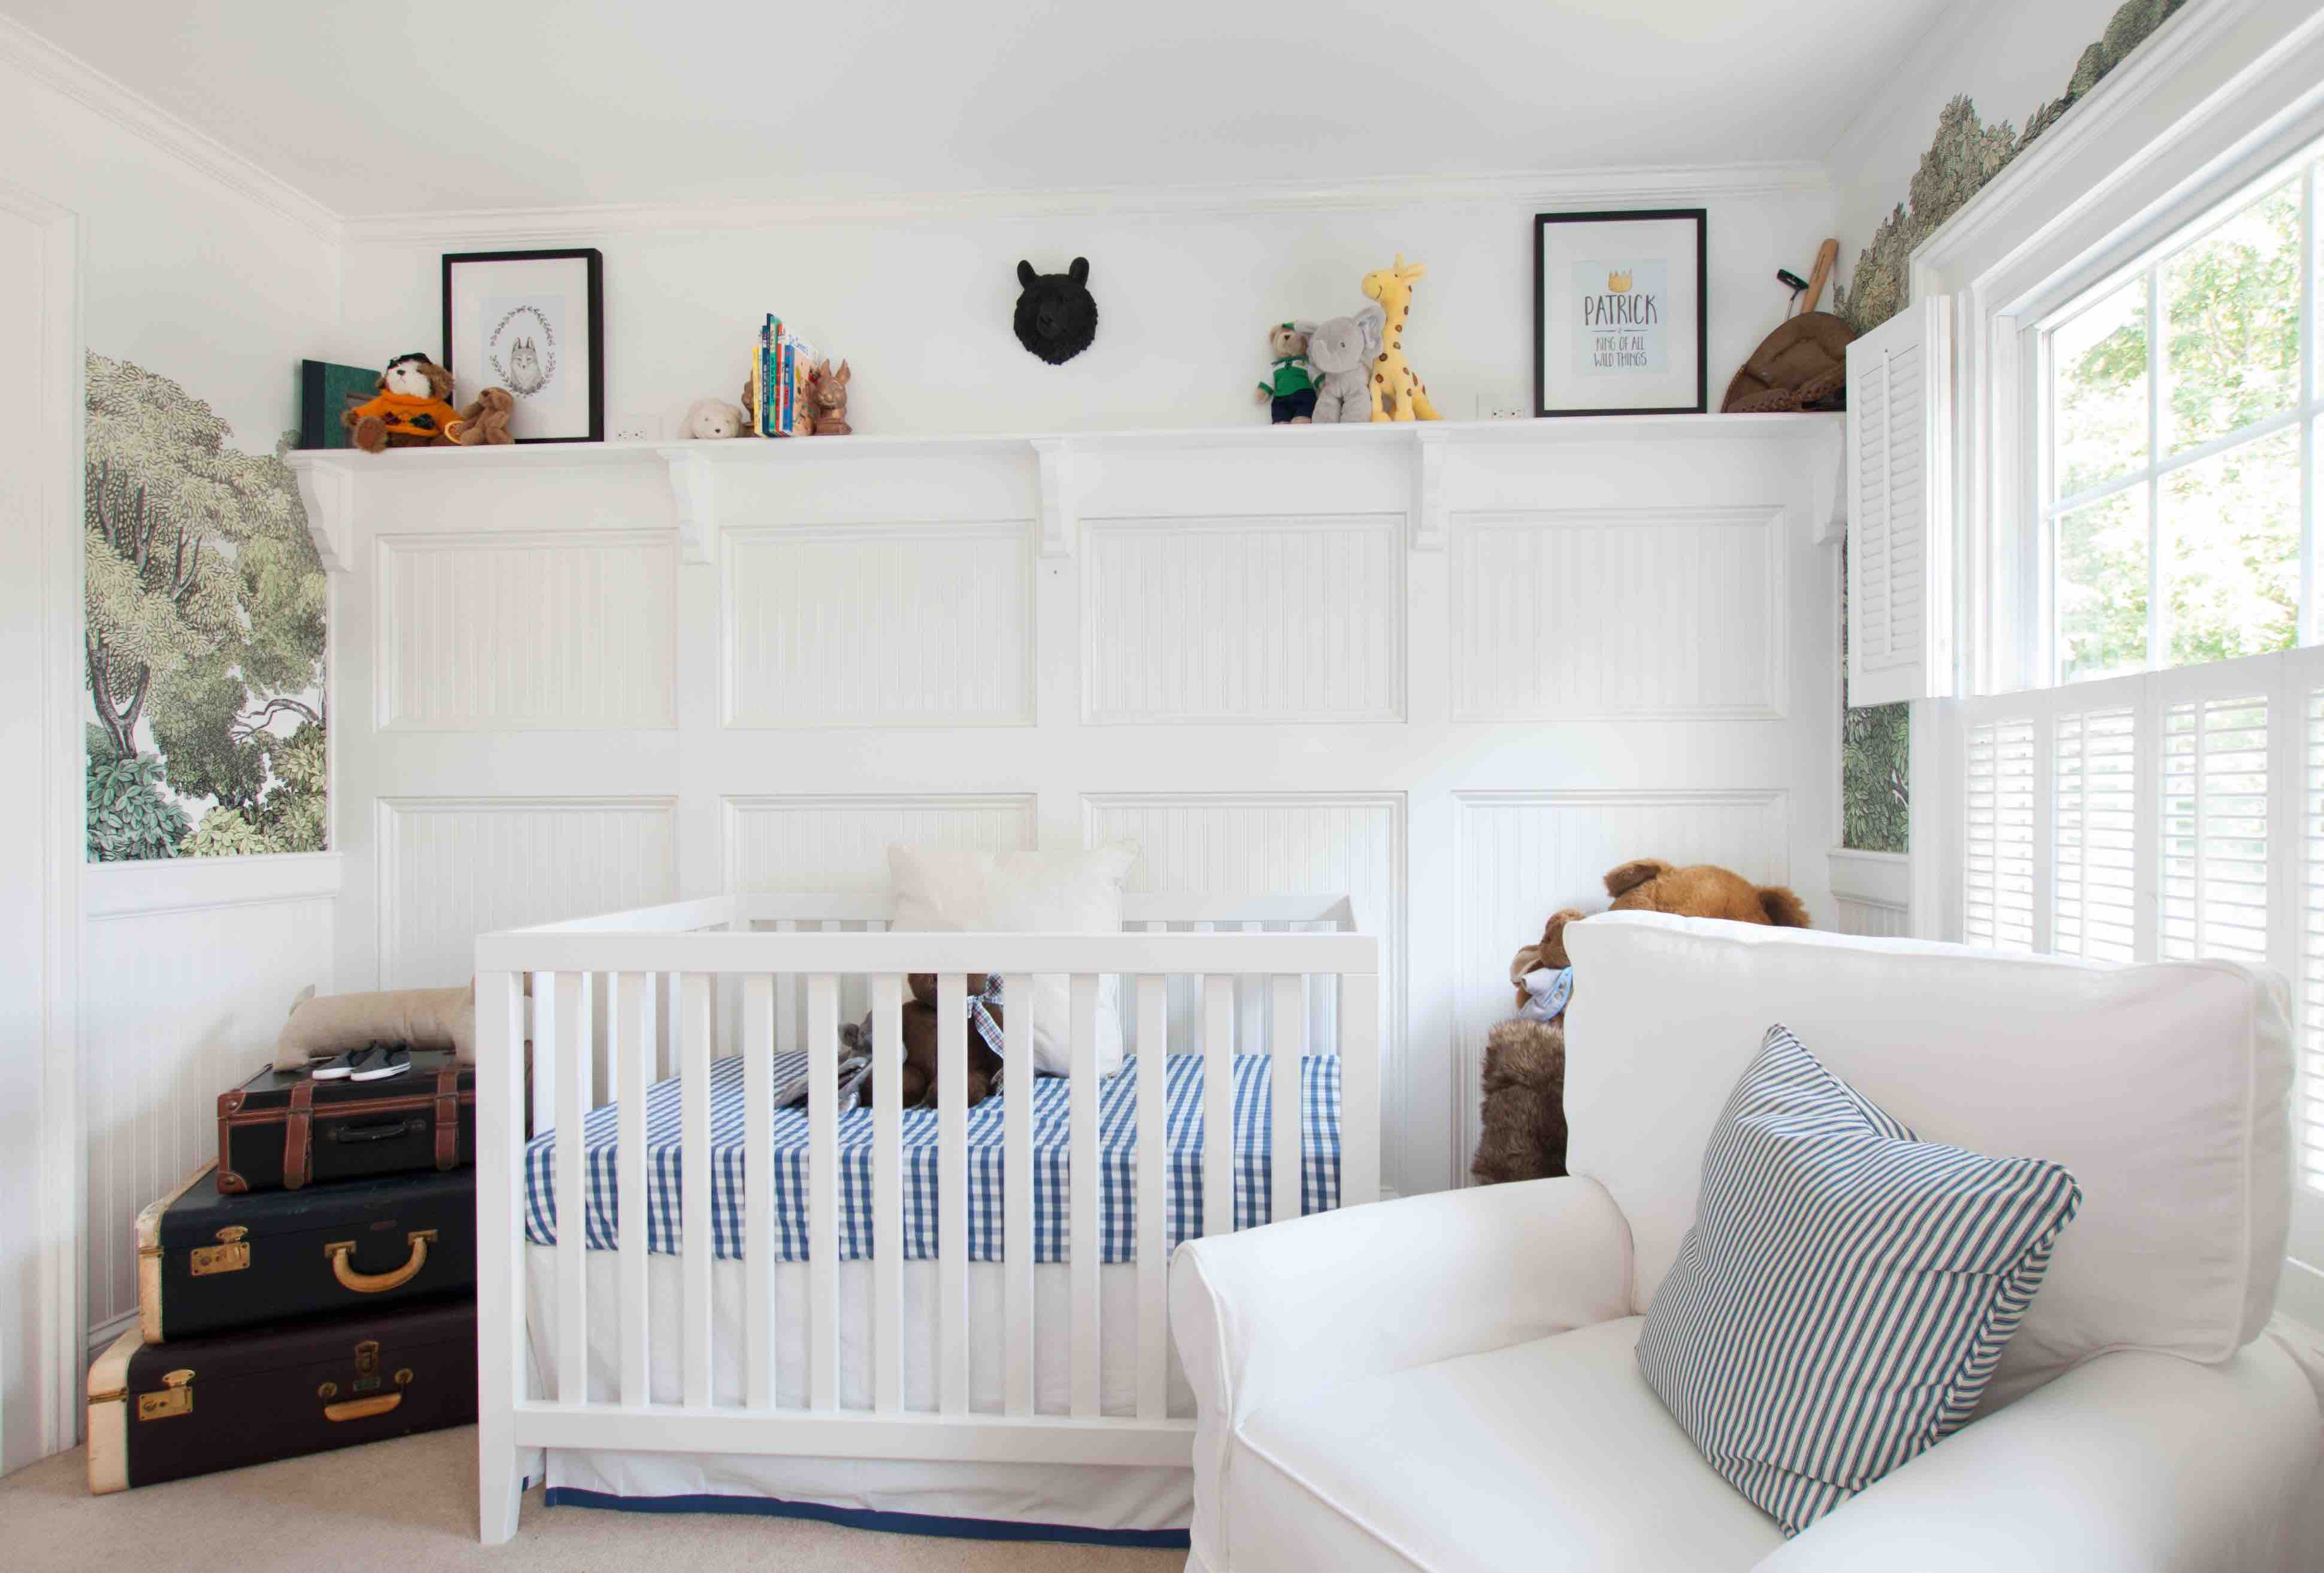 Nursery Design Tip 3: Everything is storage!